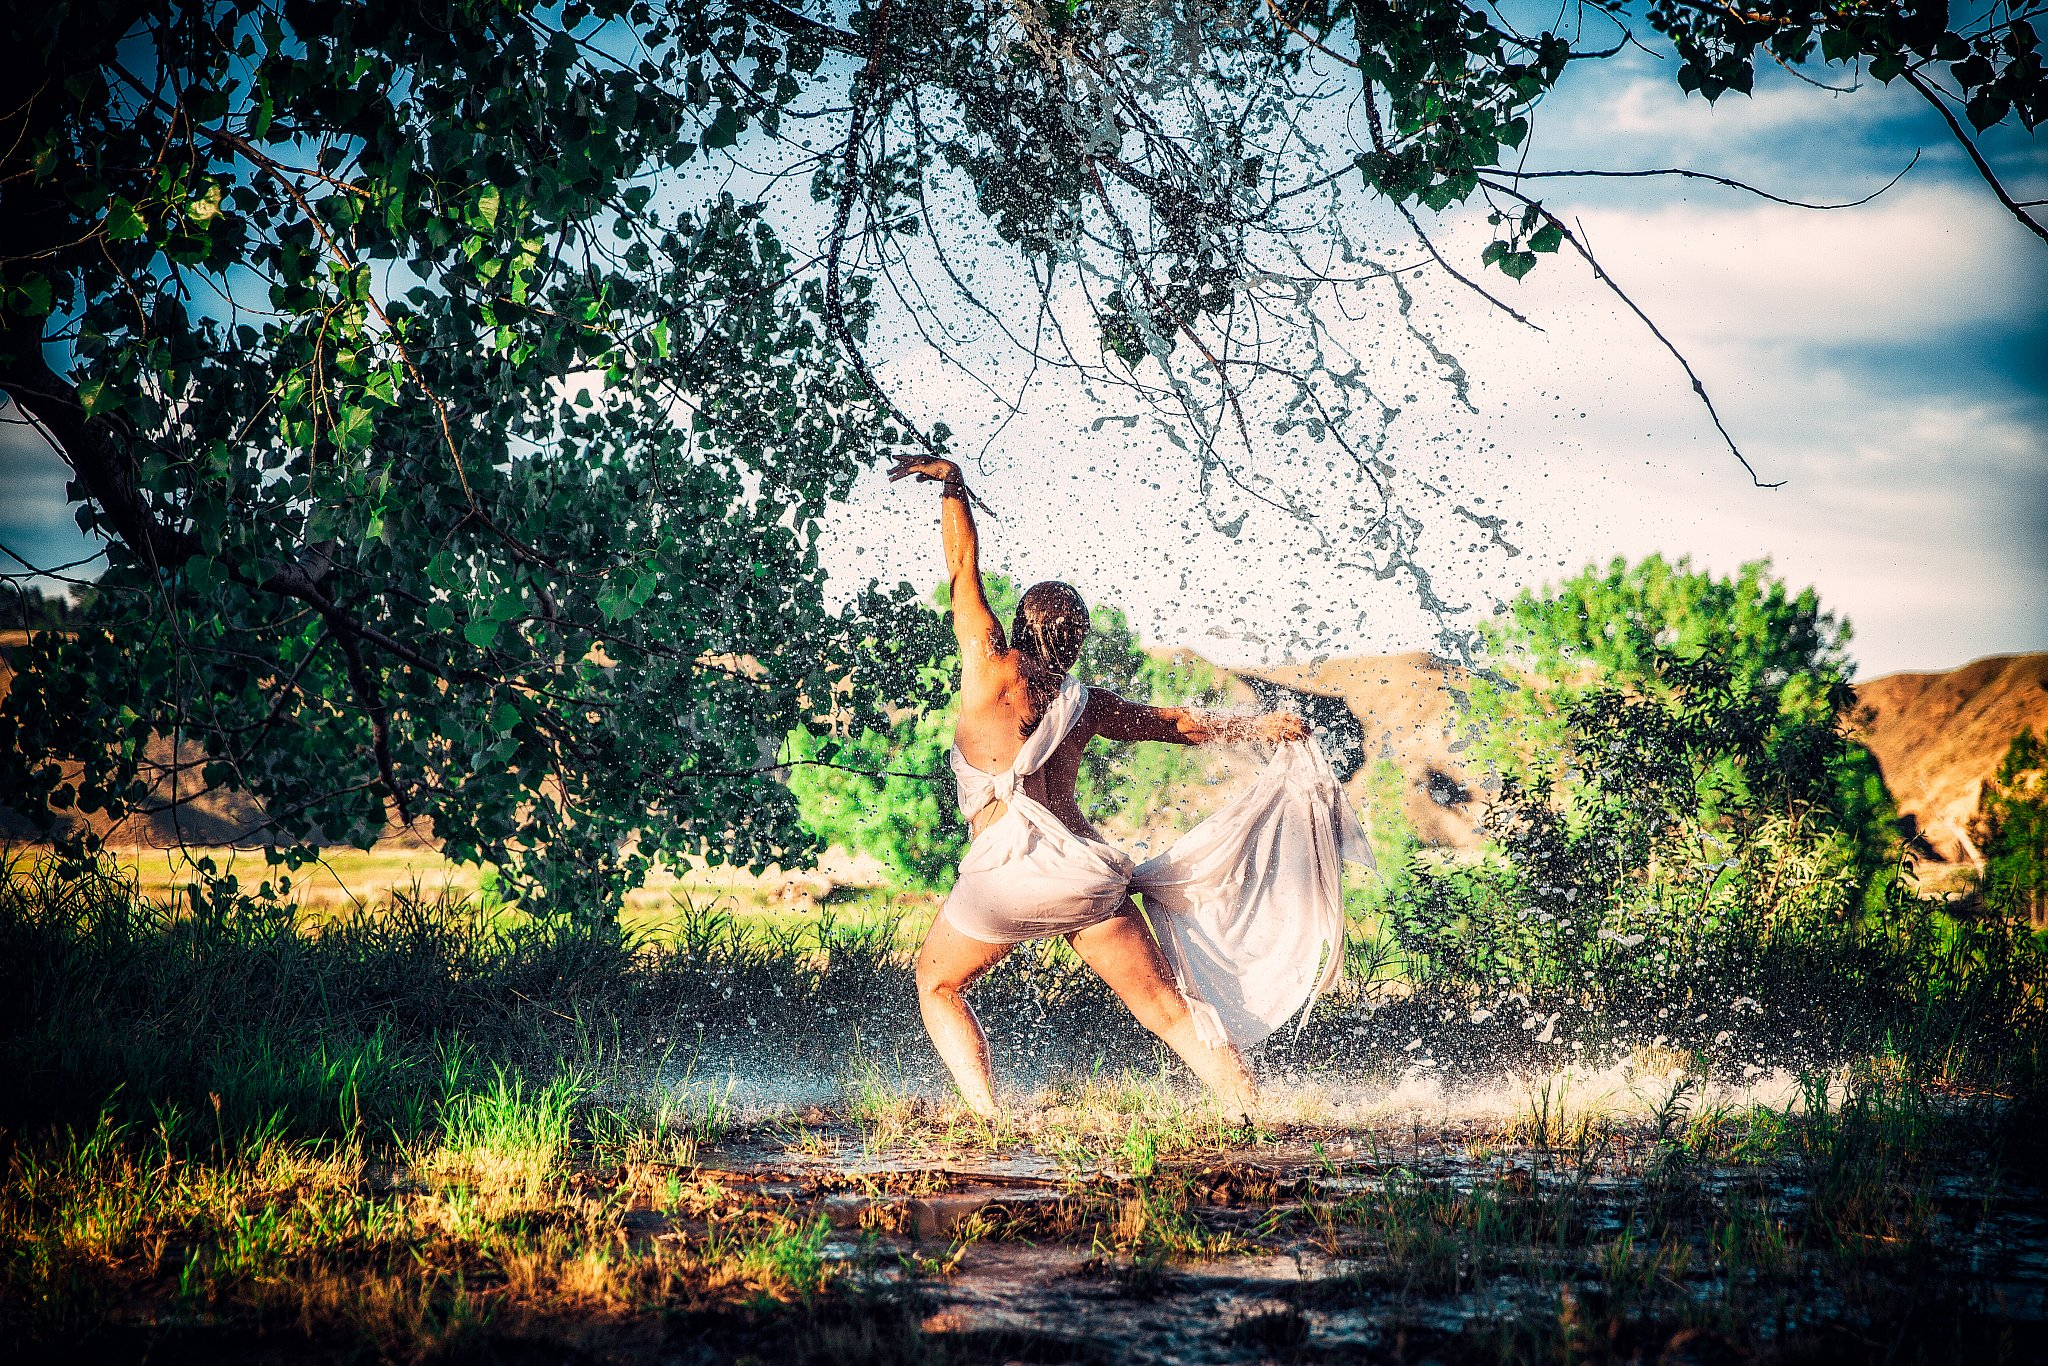 Sunshine Rain | Elegant Exposures Photography